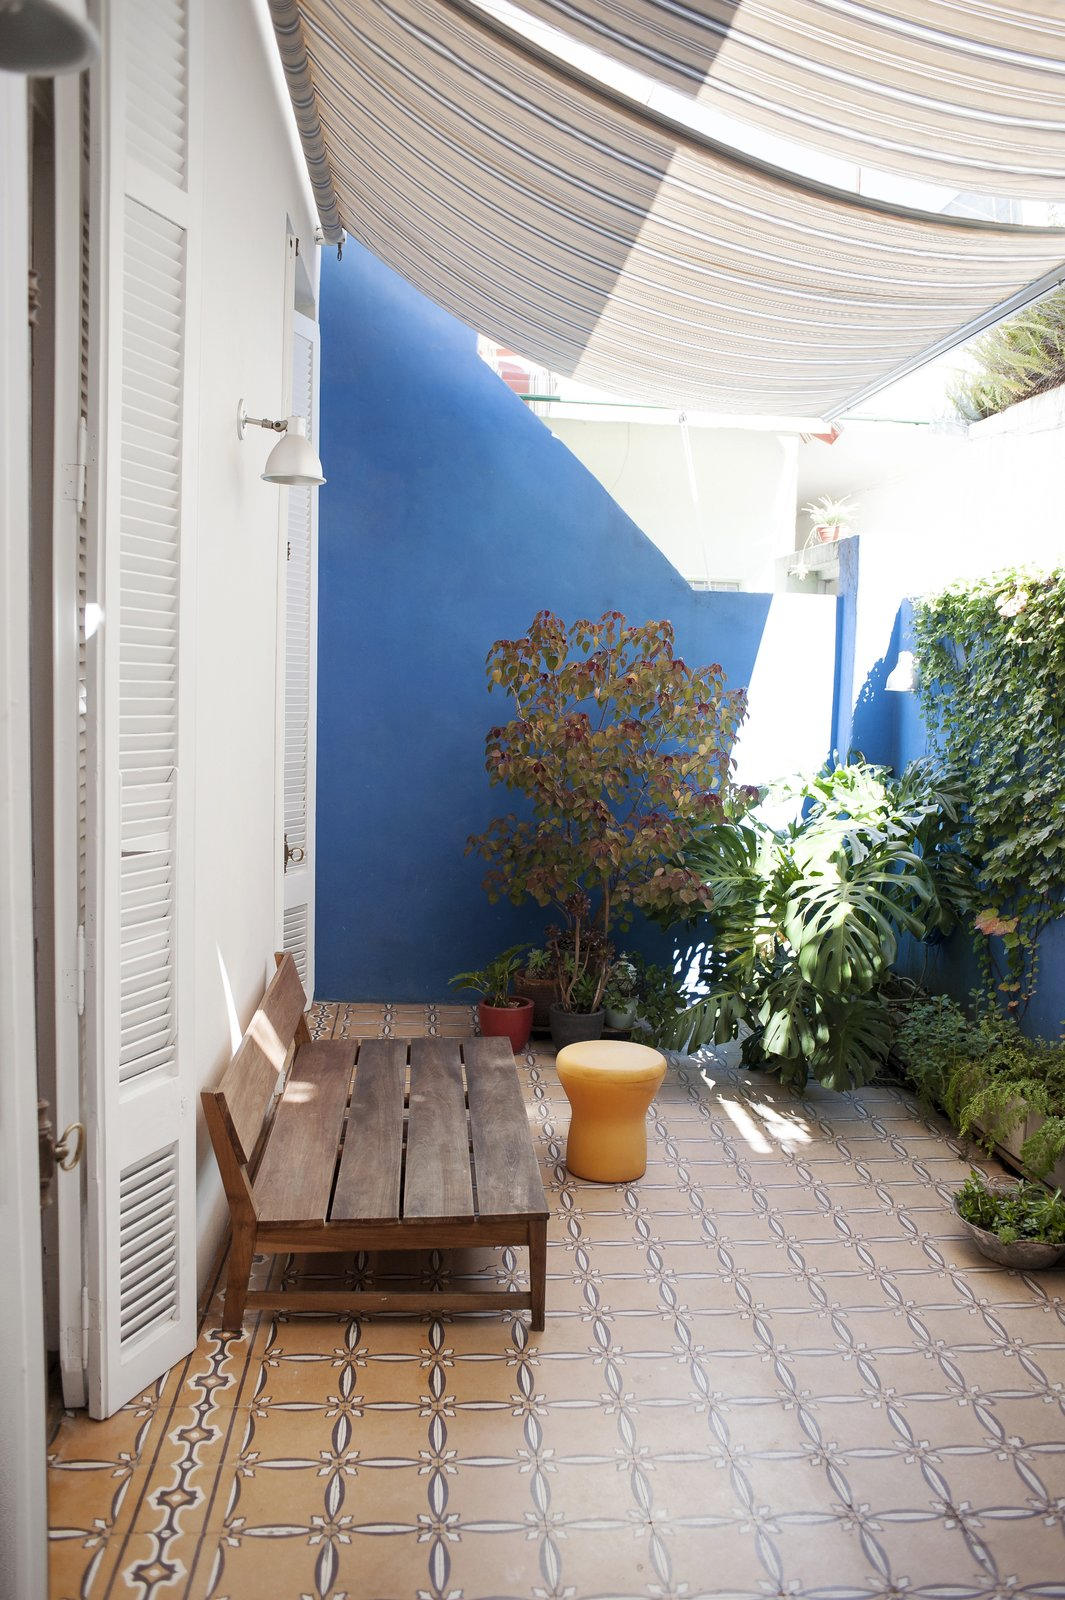 The petiribi wood bench,  the sunshades and the plants over the blue walls set up a unique atmosphere.  Artigas by melisa